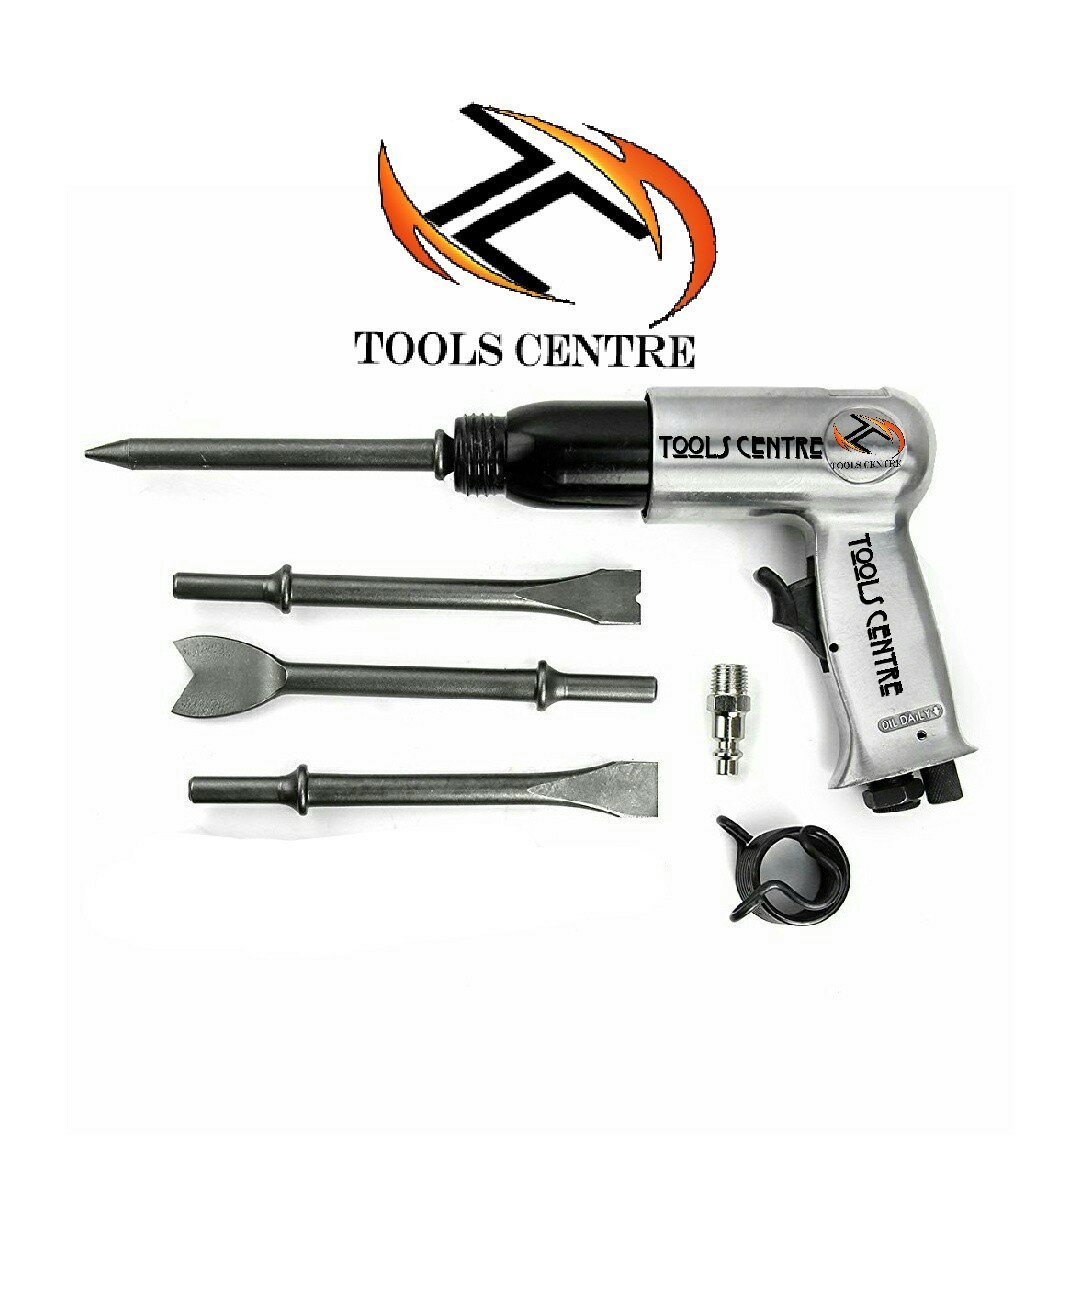 TOOLSCENTRE Tools Centre Powerful 1/2'' Air Hammer Kit With 4Pcs Free Chisel (Various Sizes Available). by Tools Centre